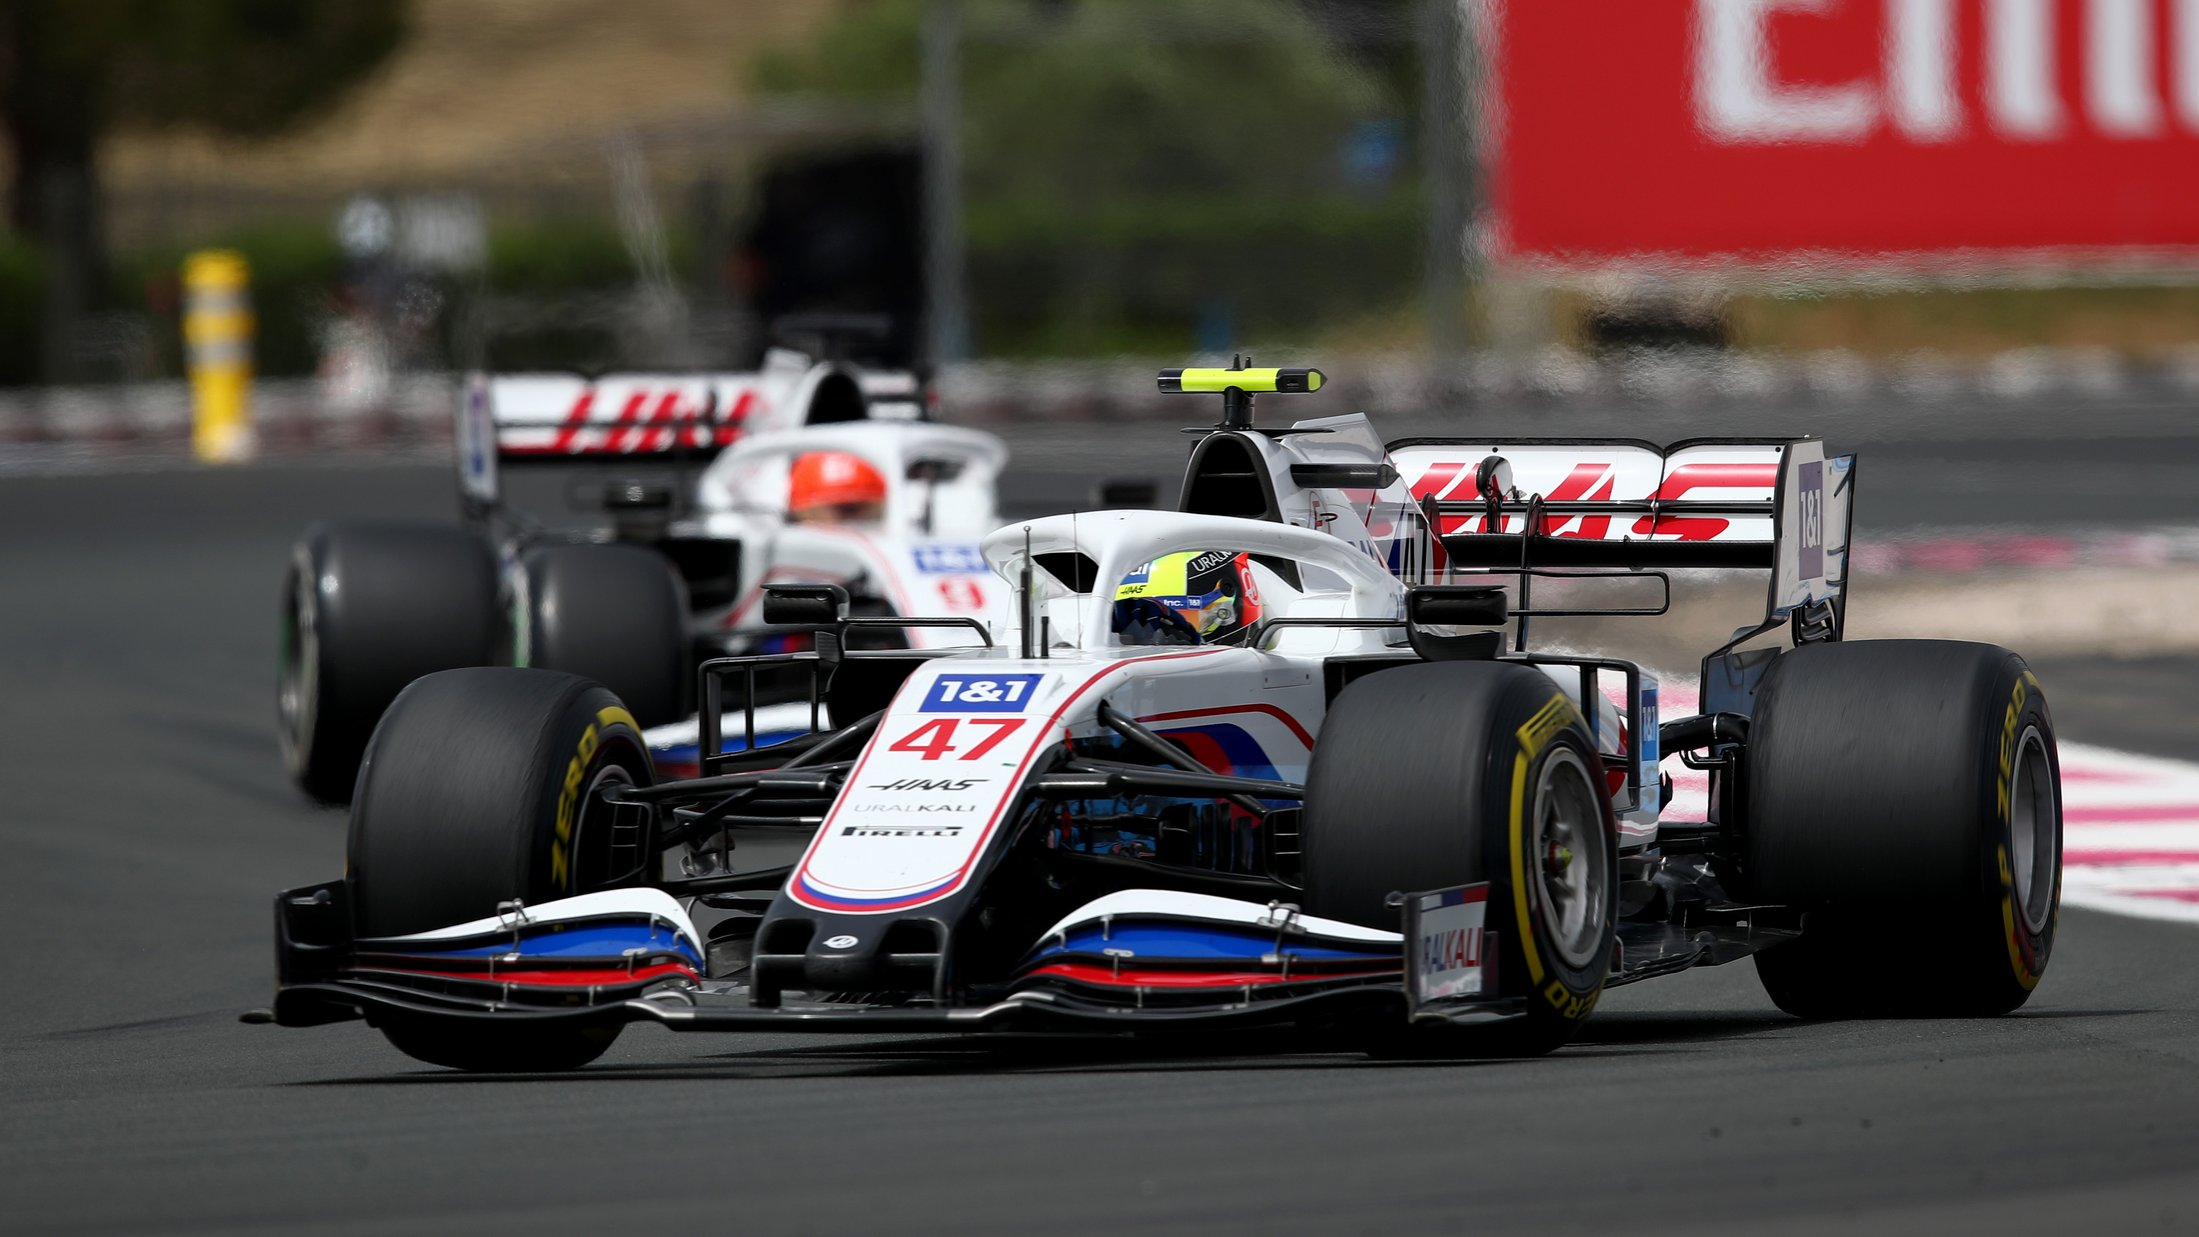 'Hard but not unfair racing' says Steiner after Haas drivers squabble on track for second race running   Formula 1®